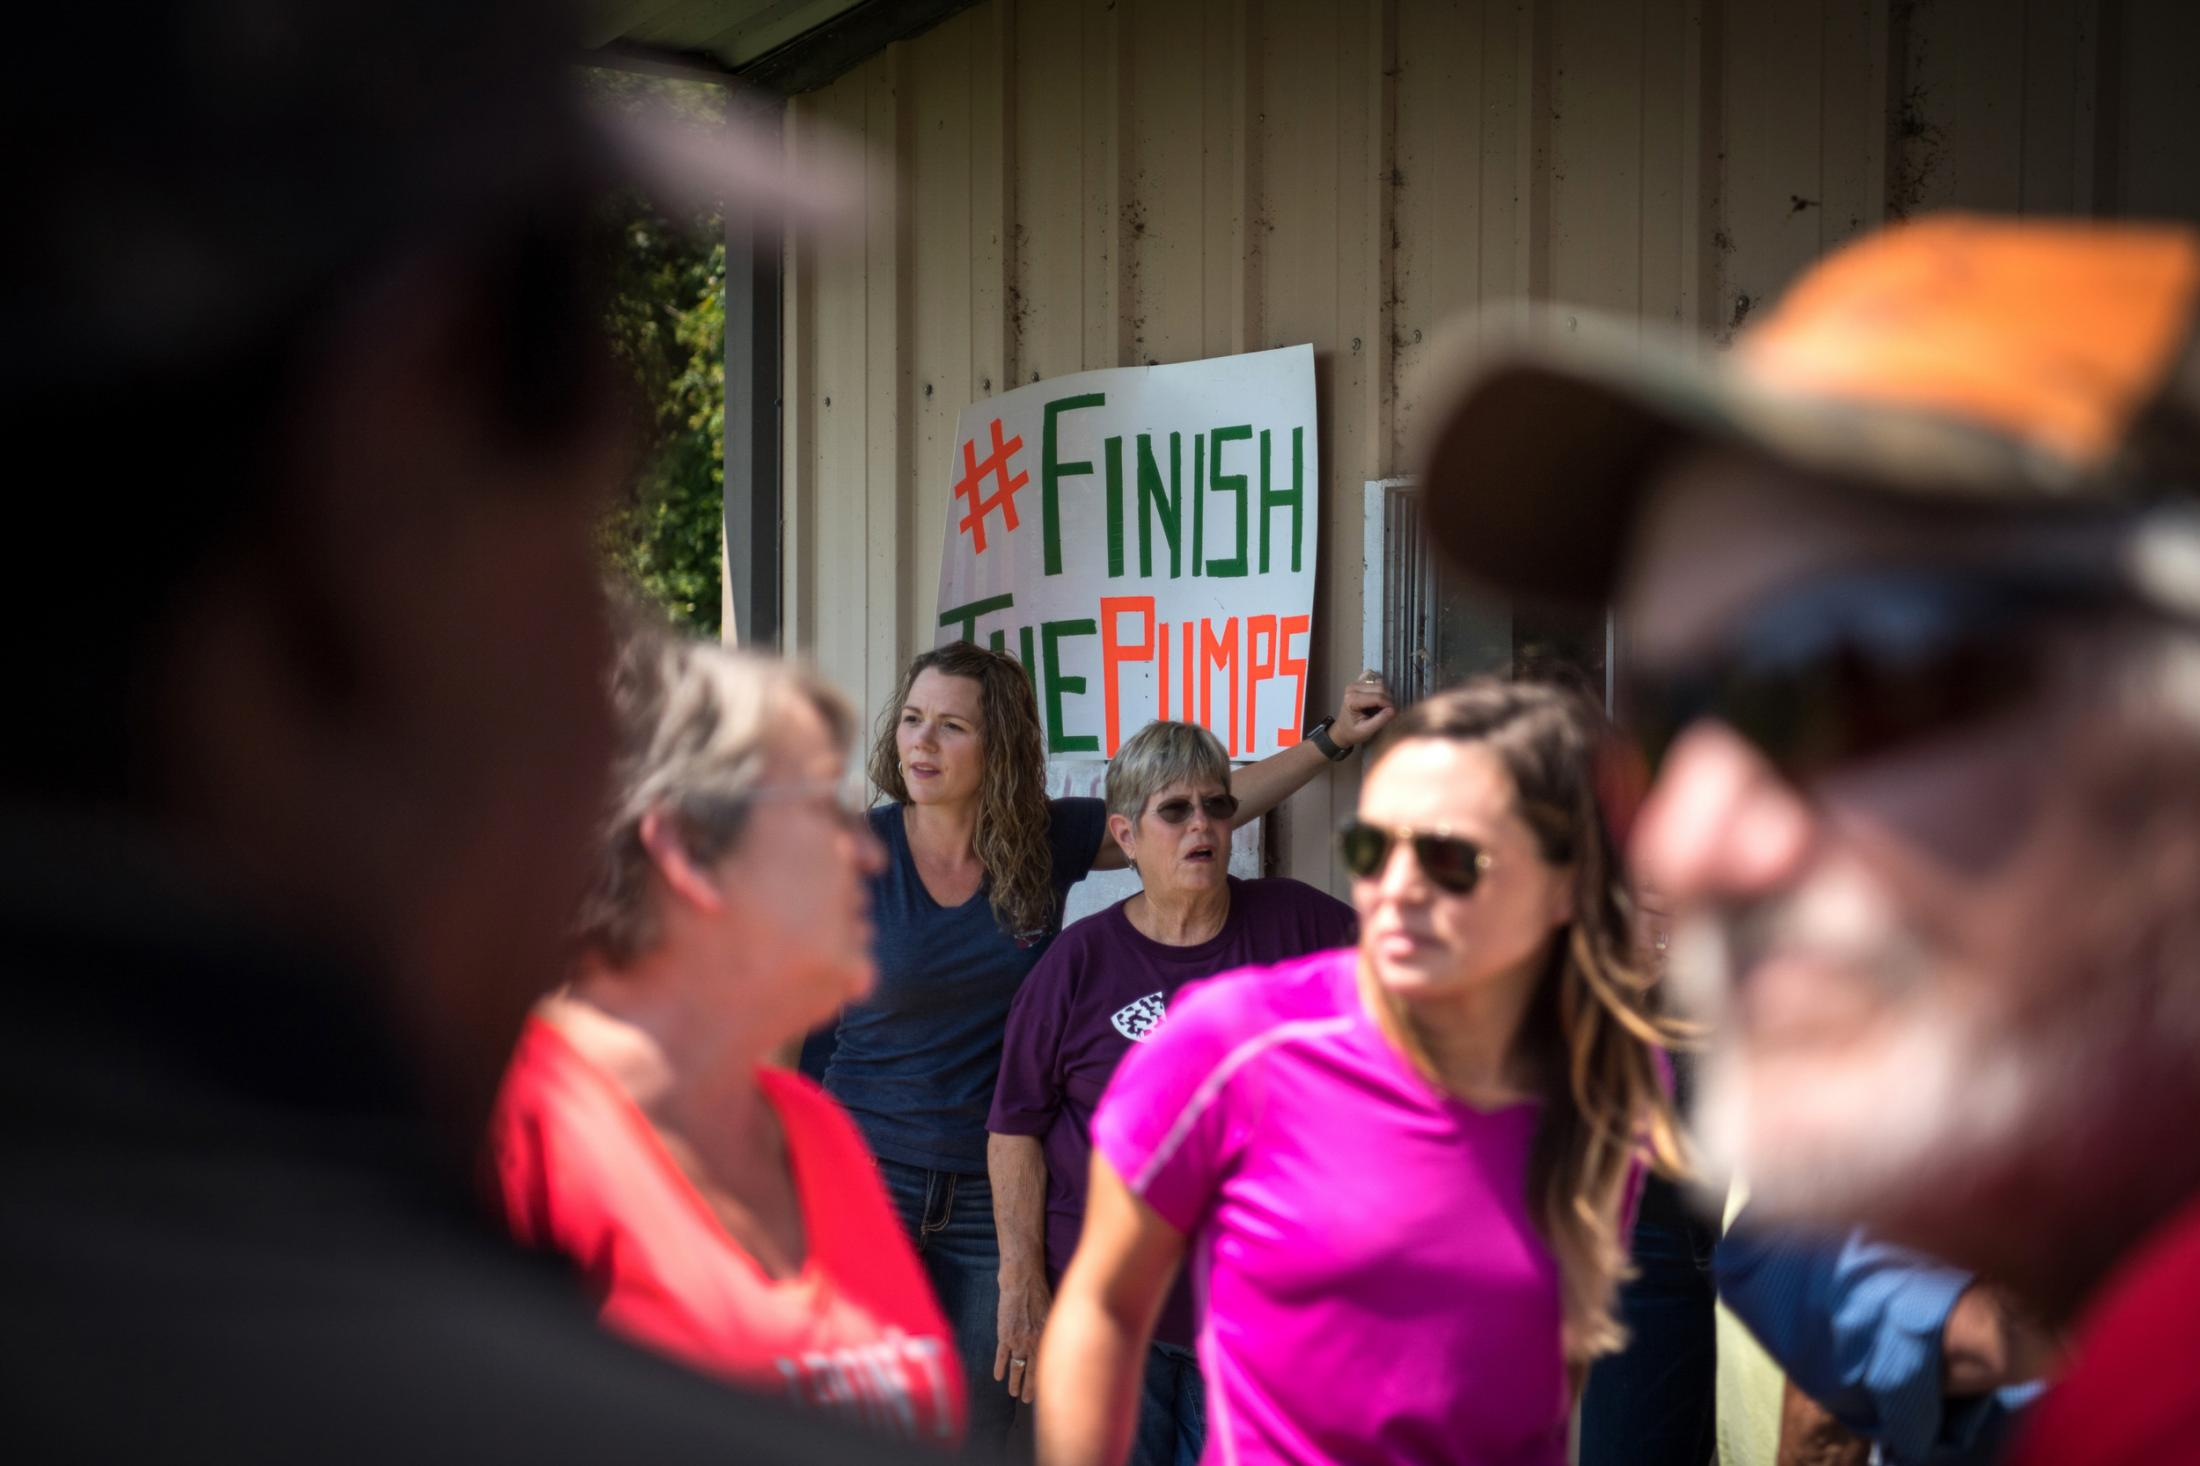 Regional residents gather outside the Valley Park fire station following a media day meeting in Valley Park, Mississippi on July 27, 2019. Updates about recovery relief were provided by local officials and the Mississippi Levee Board. Photo by Rory Doyle for The Guardian.